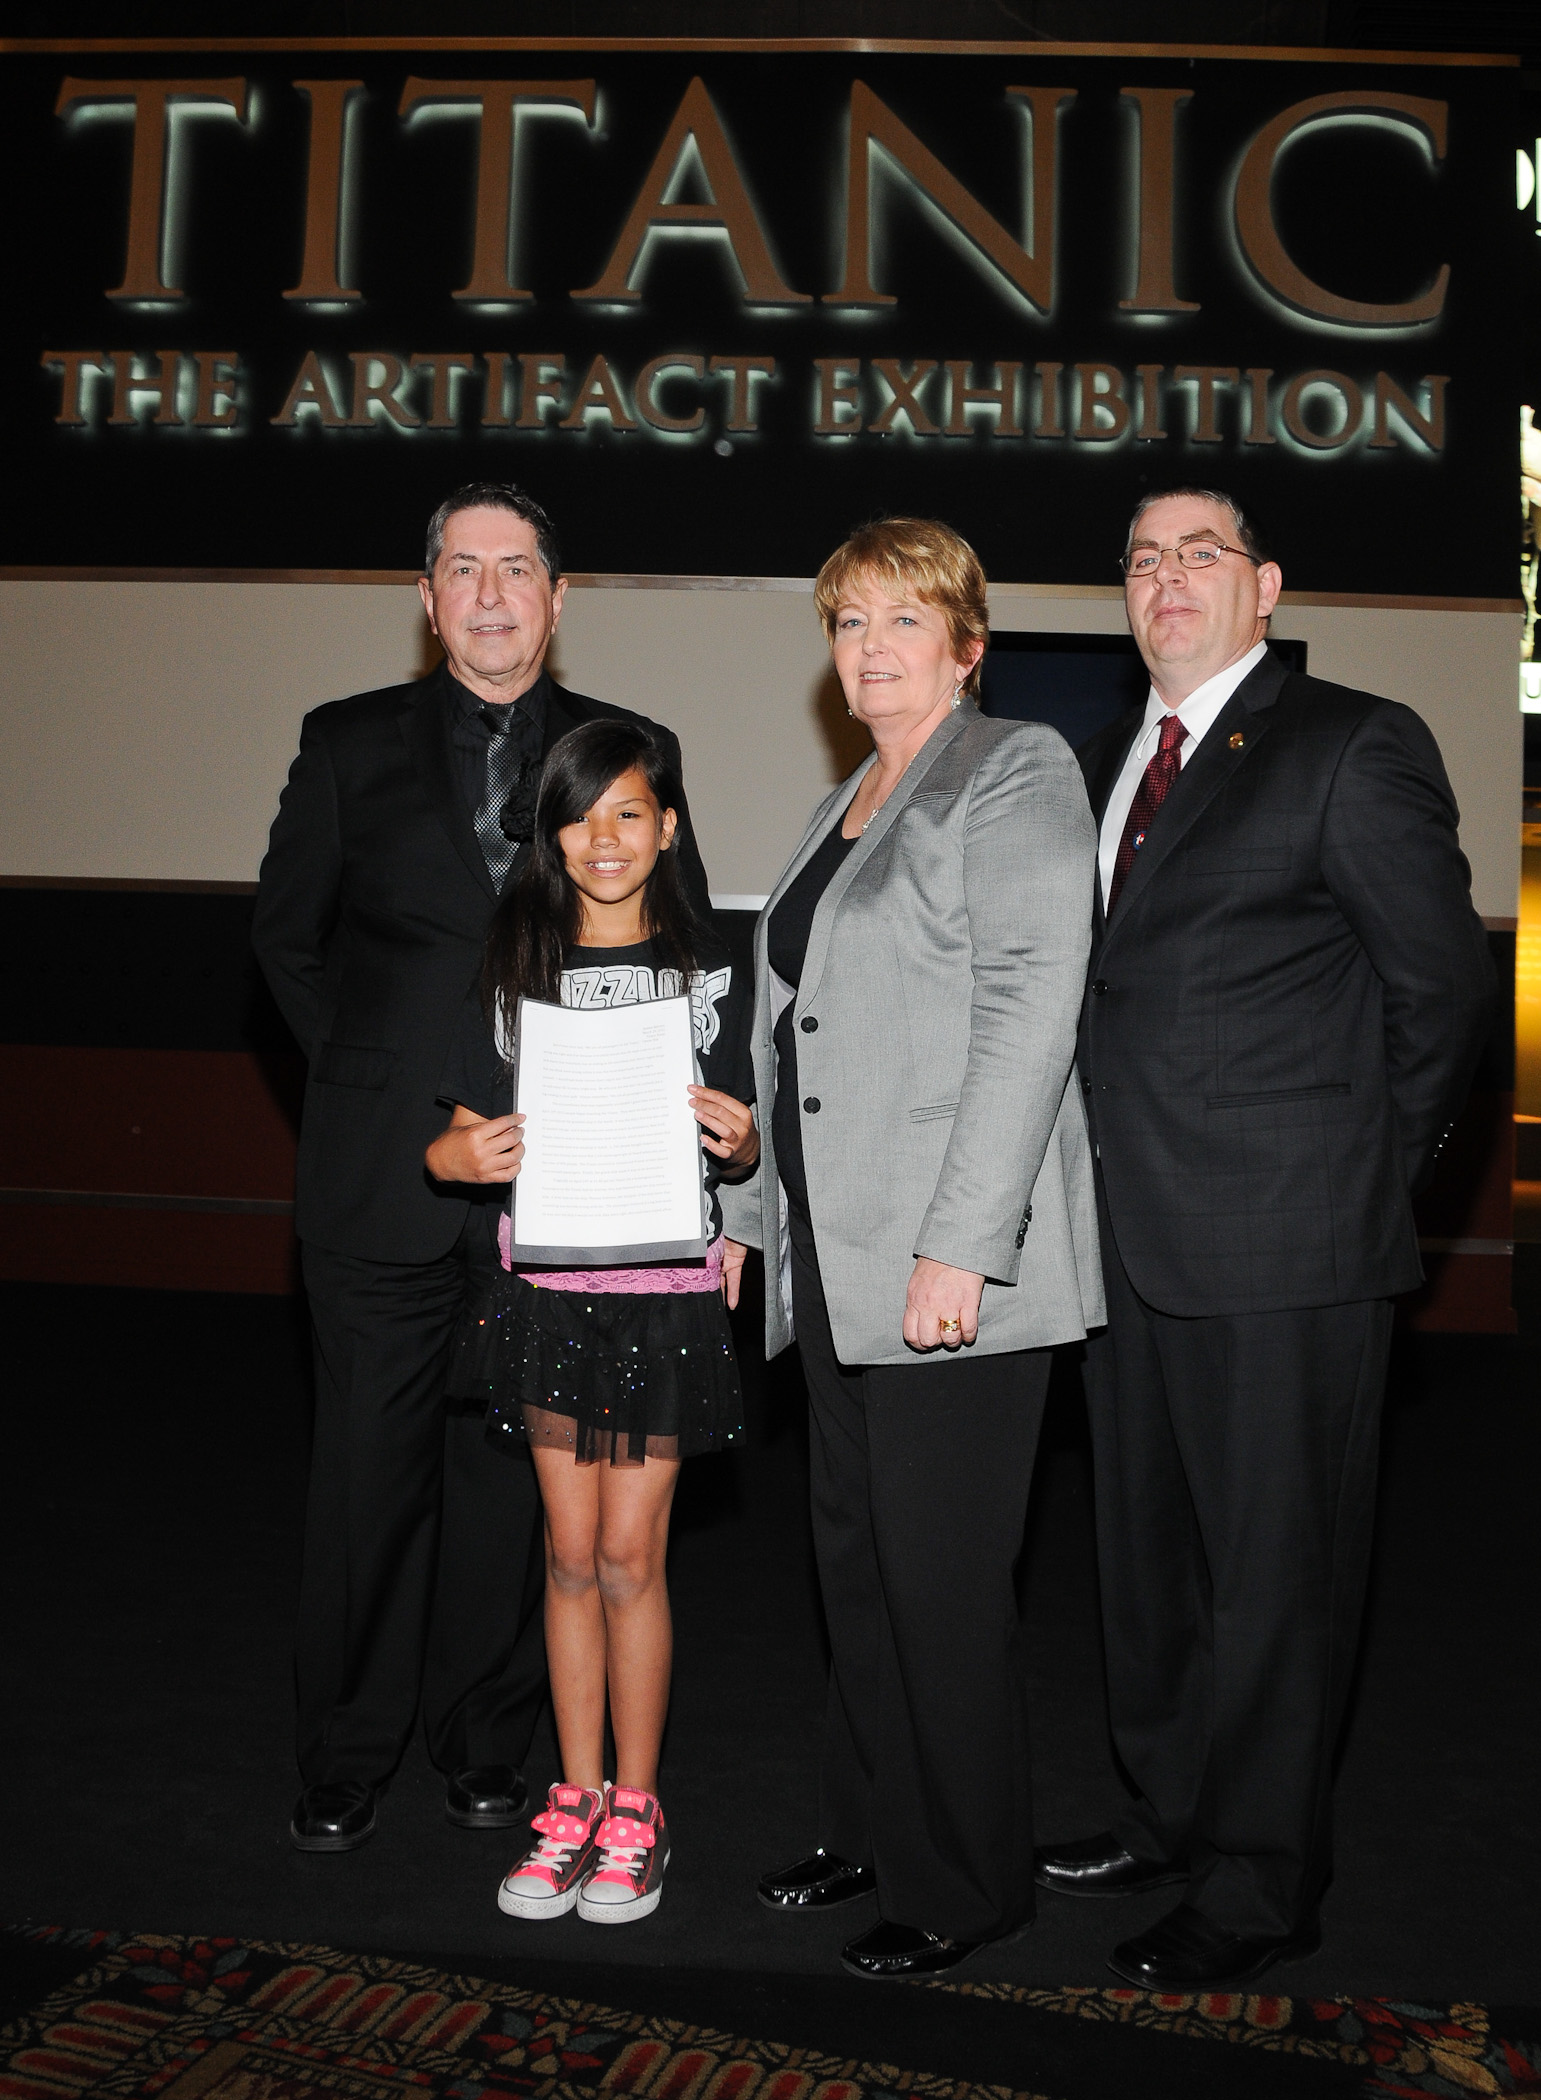 Mike Hartzell, Luxor Hotel and Casino Director of Entertainment, Ayleen Herrera, Titanic essay winner, Alexandra Klingelhoffer, VP of Collections for Premier Exhibitions and RMS Titanic Inc., Tom Goldsmith, descendant of survivor Frank John William Goldsmith